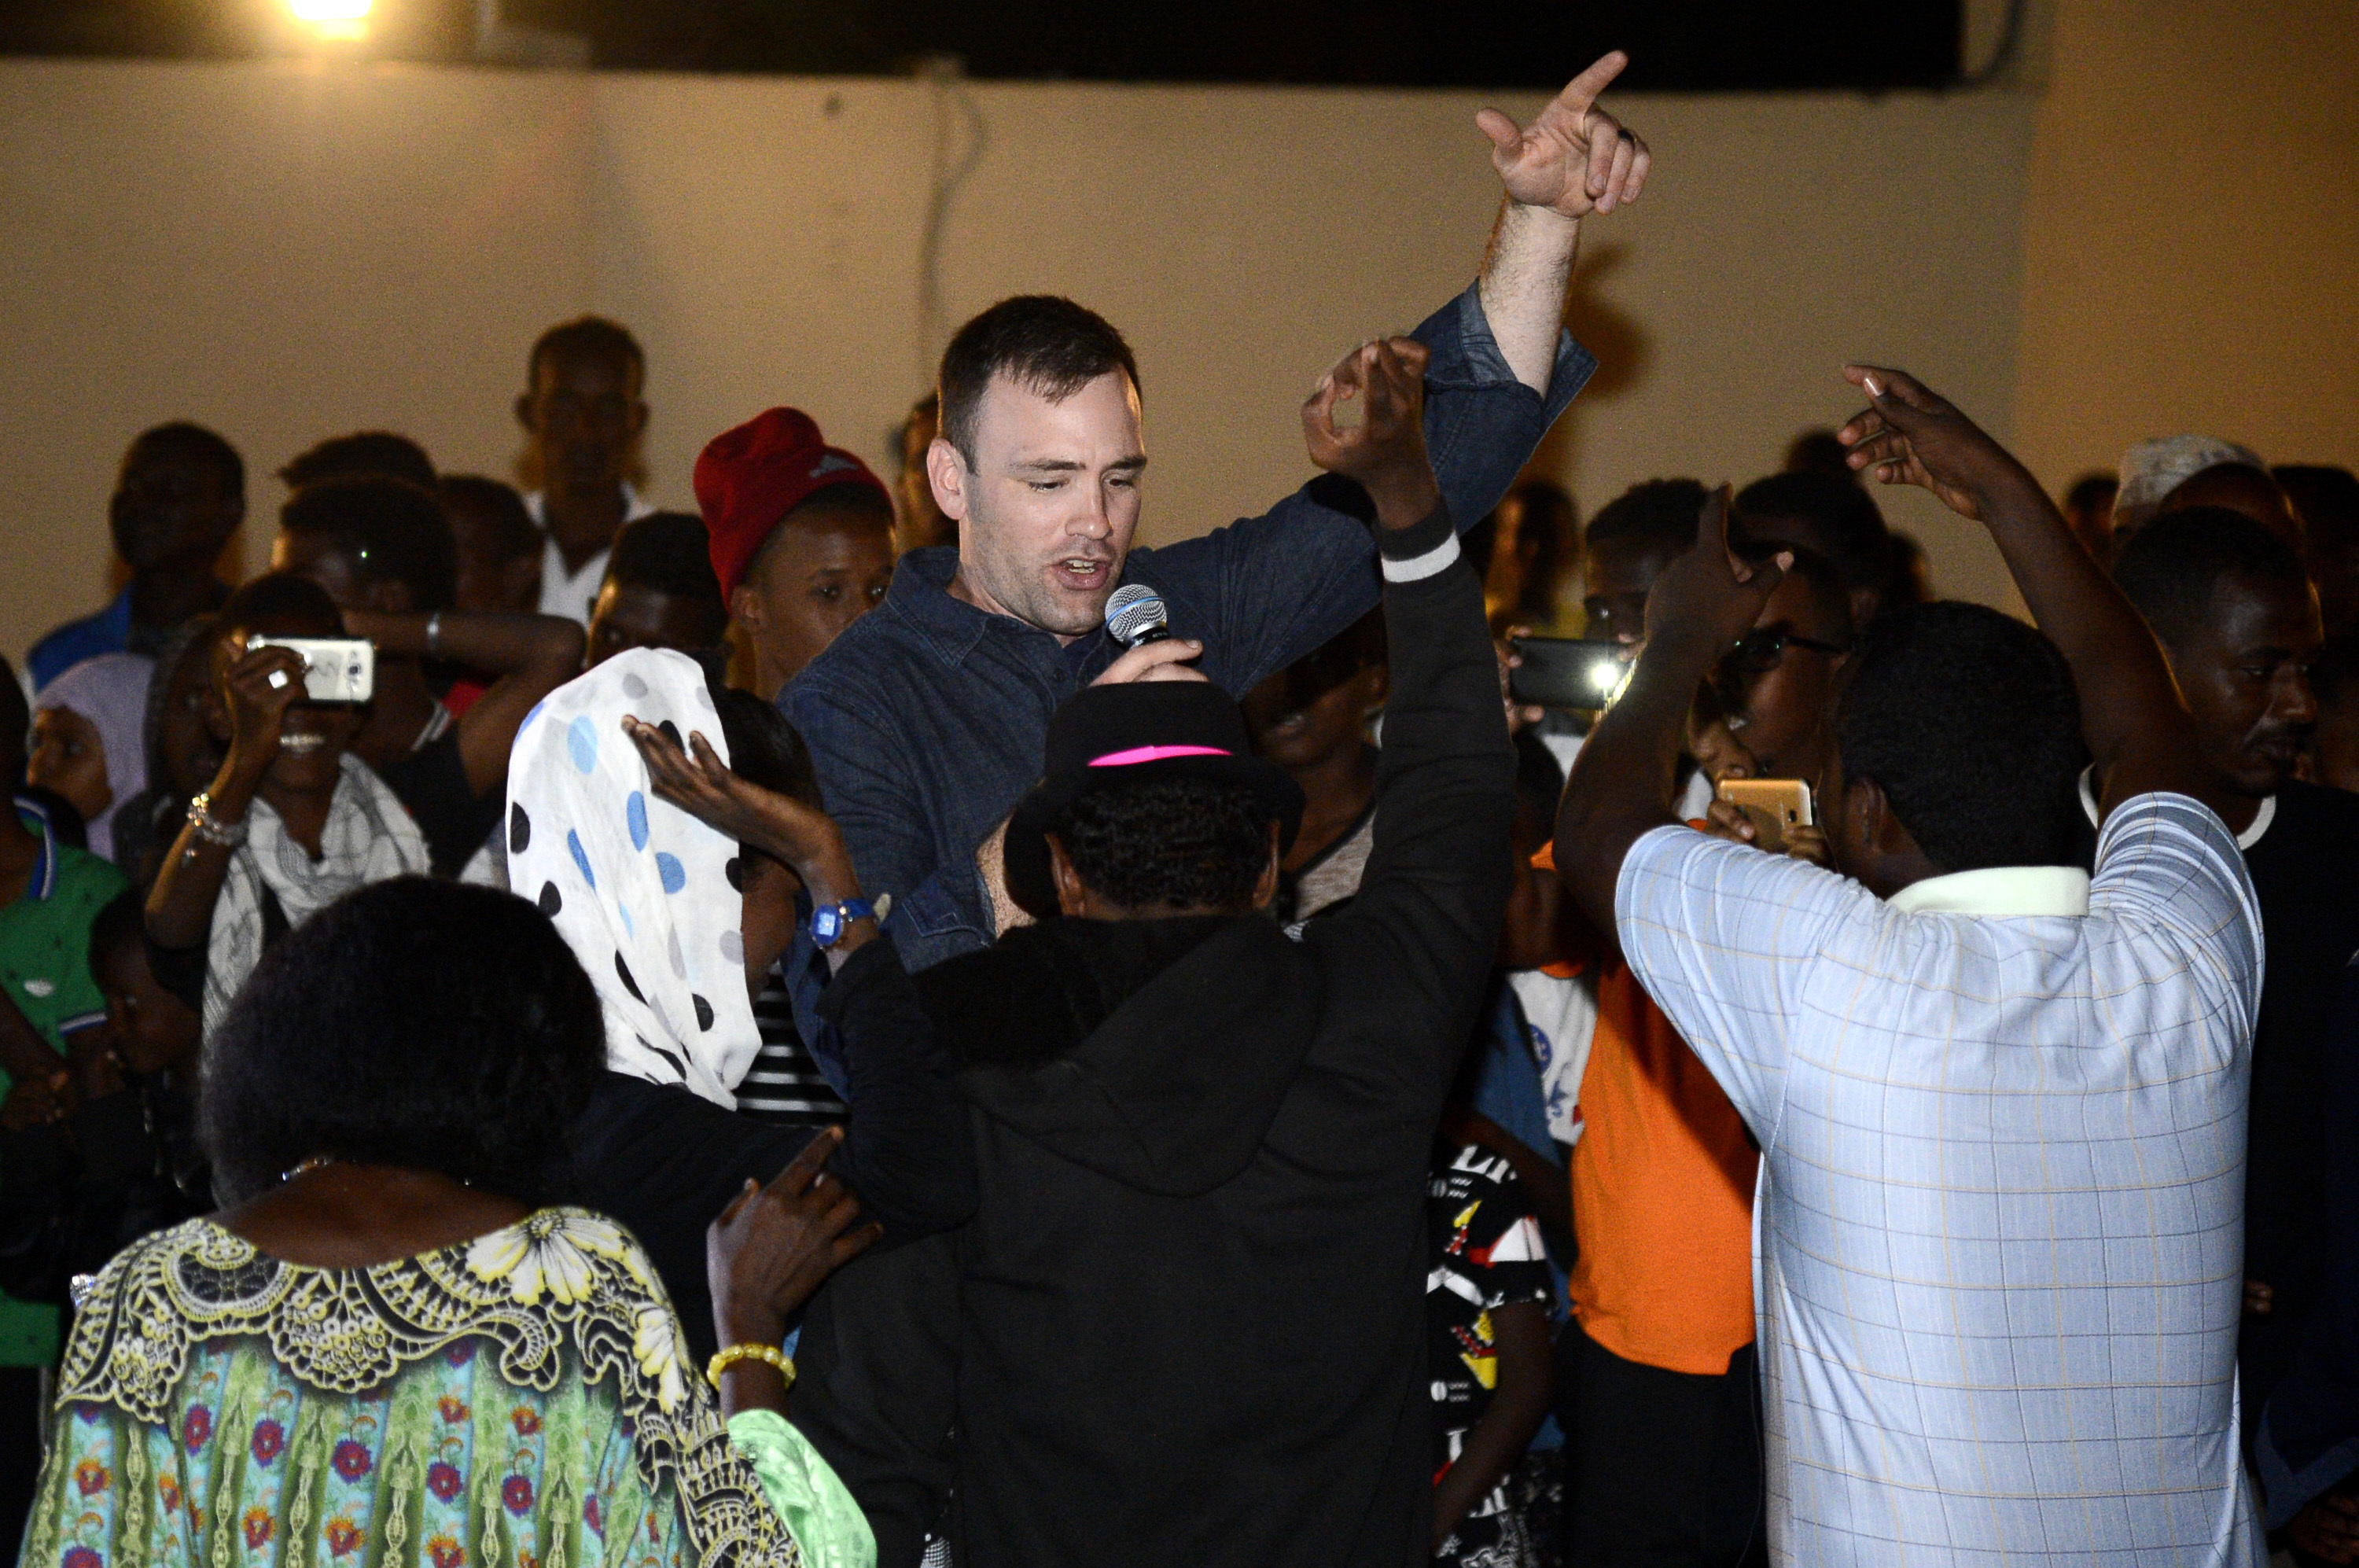 U.S. Air Force Staff Sgt. Craig Larimer, a member of the U.S. Air Forces Central Command (AFCENT) Band, sings and dances with Djiboutians during a concert at the Balbala E-Learning Center in Djibouti, January 10, 2018. The AFCENT Band performed at the E-Learning center as part of their two week tour where they held workshops, clinics, and concerts throughout the city of Djibouti. (U.S. Navy Photo by Mass Communication Specialist 2nd Class Timothy M. Ahearn/Released)